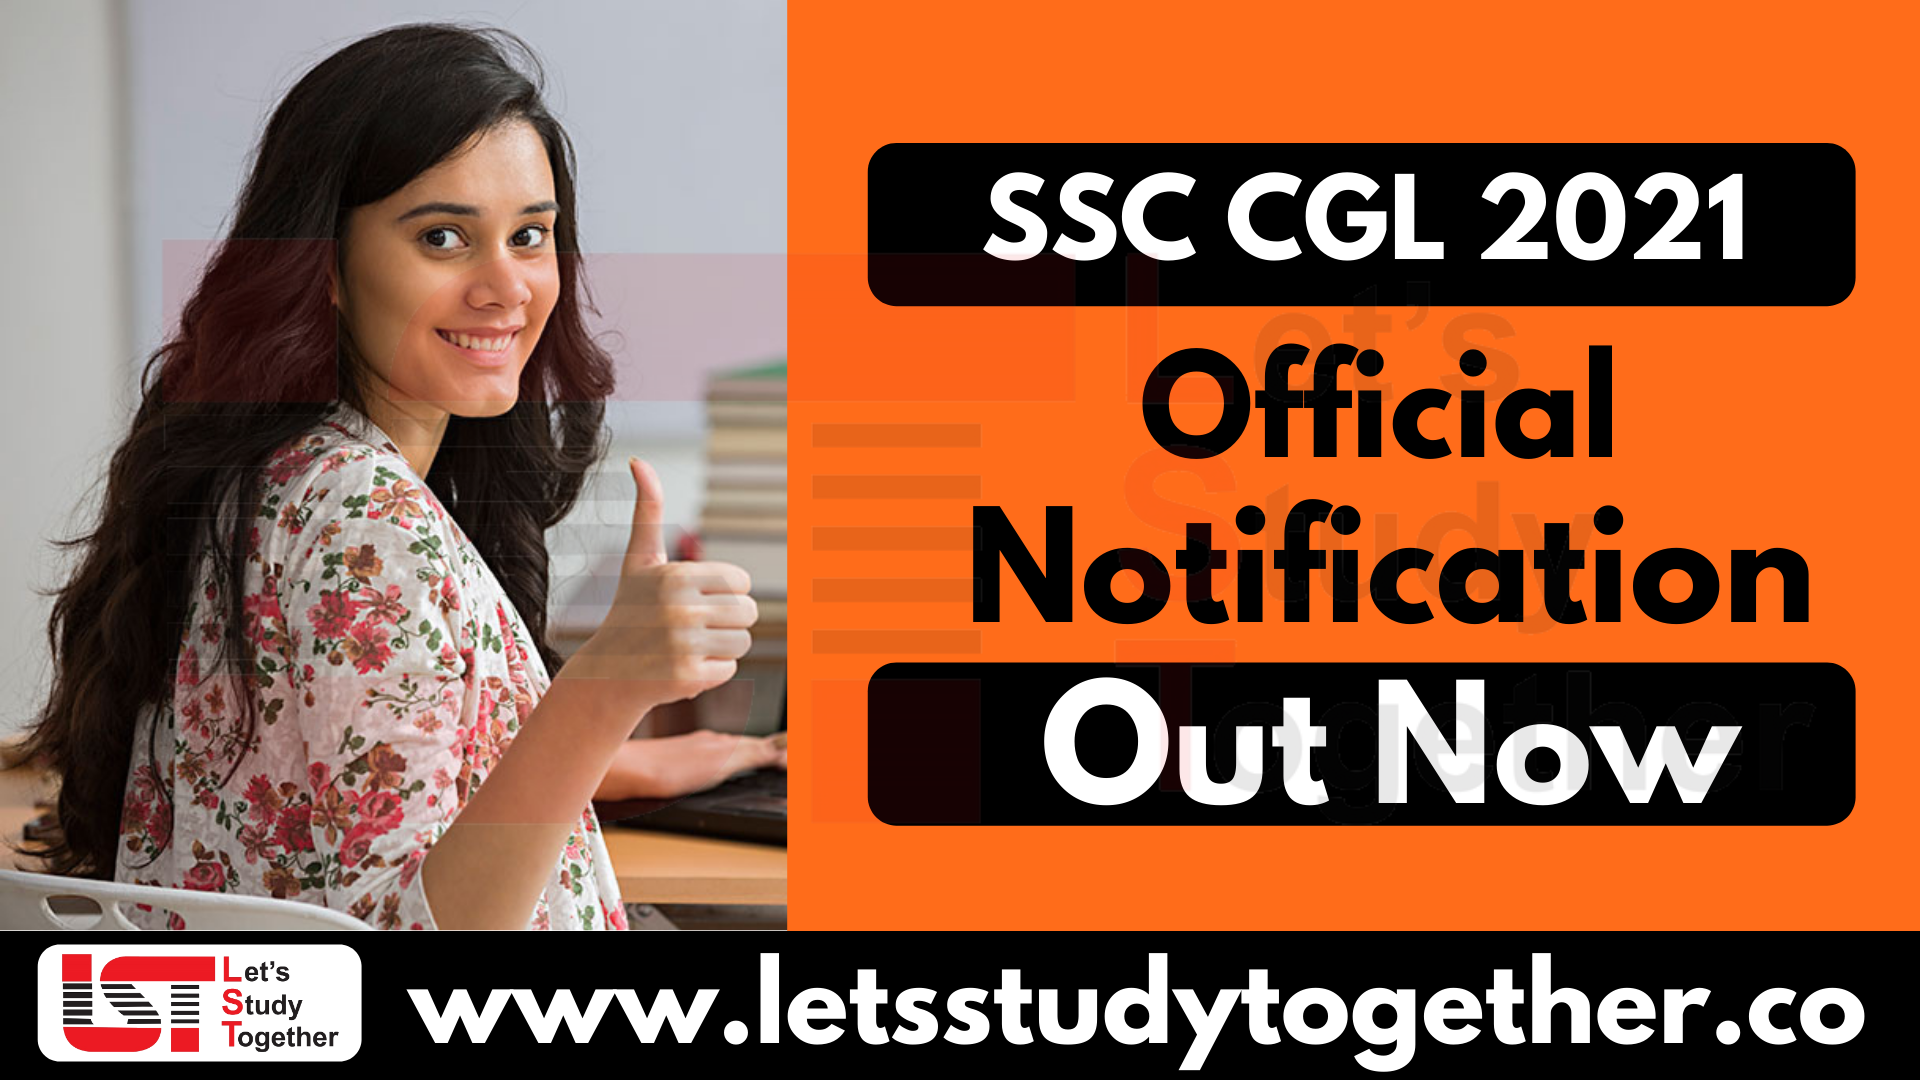 SSC CGL 2021 Recruitment Notification Out - Apply Online